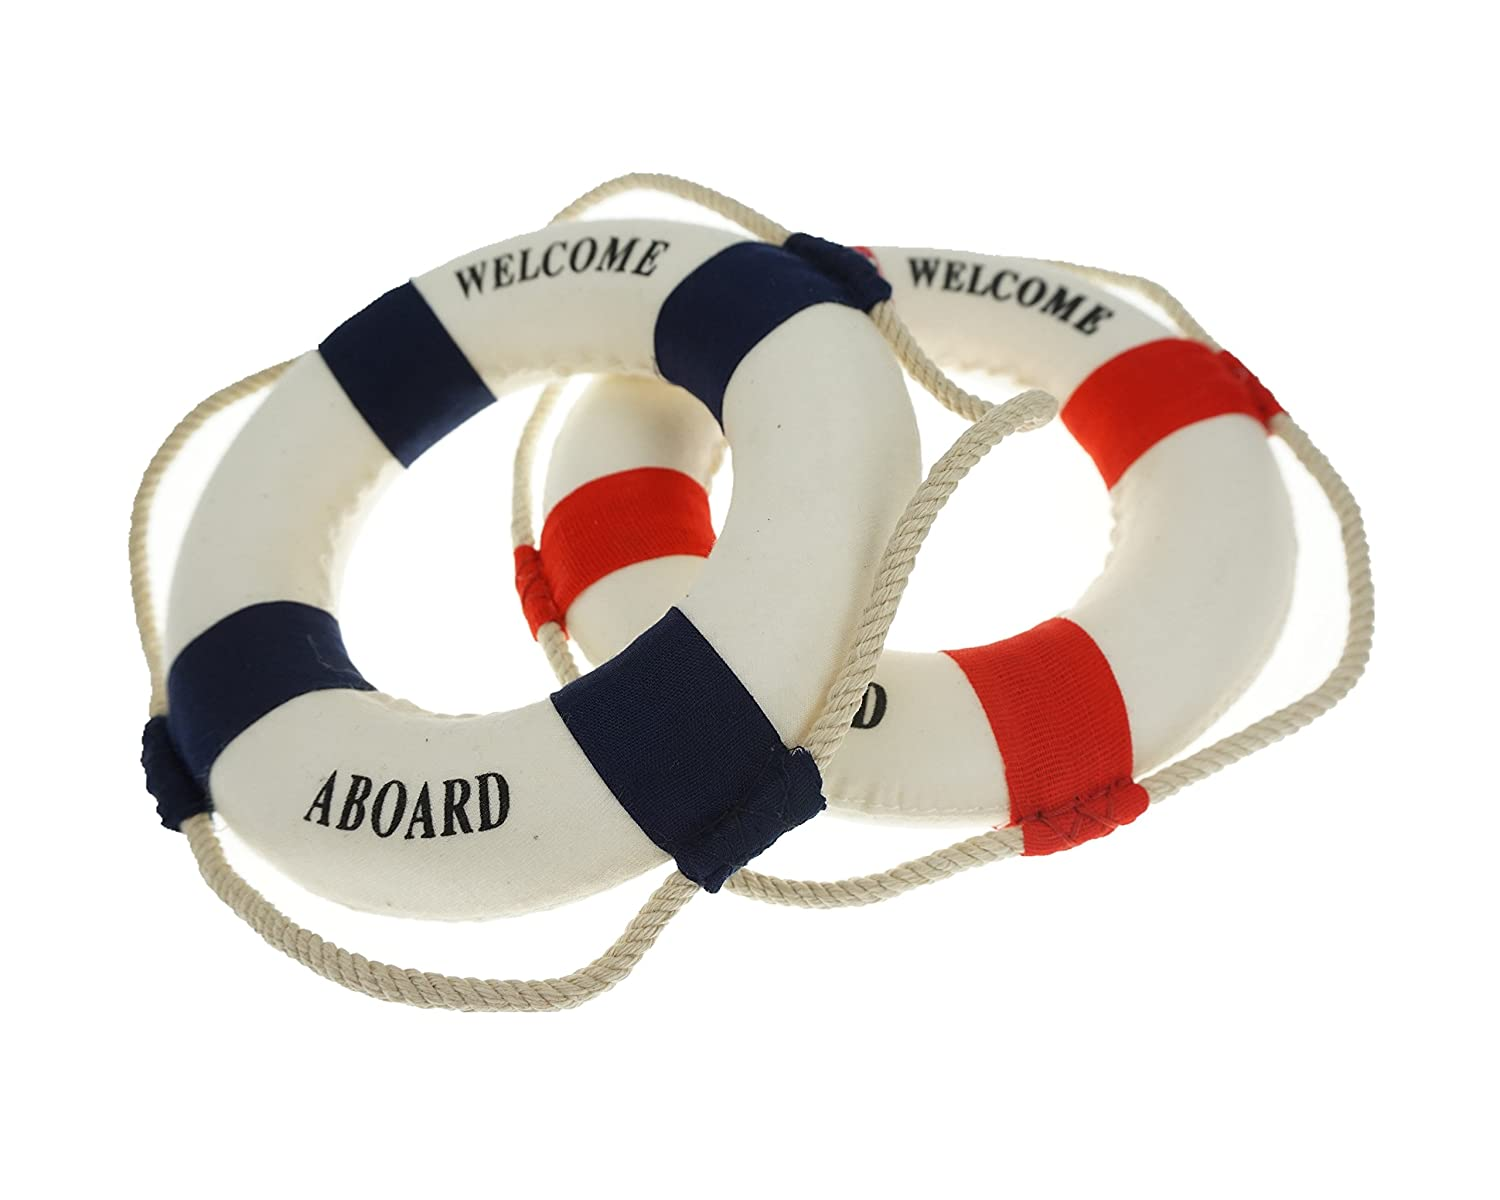 Bilipala 2PCS Welcome Cloth Decorative Life Ring, Buoy Home Wall Nautical Decor, Red&Blue